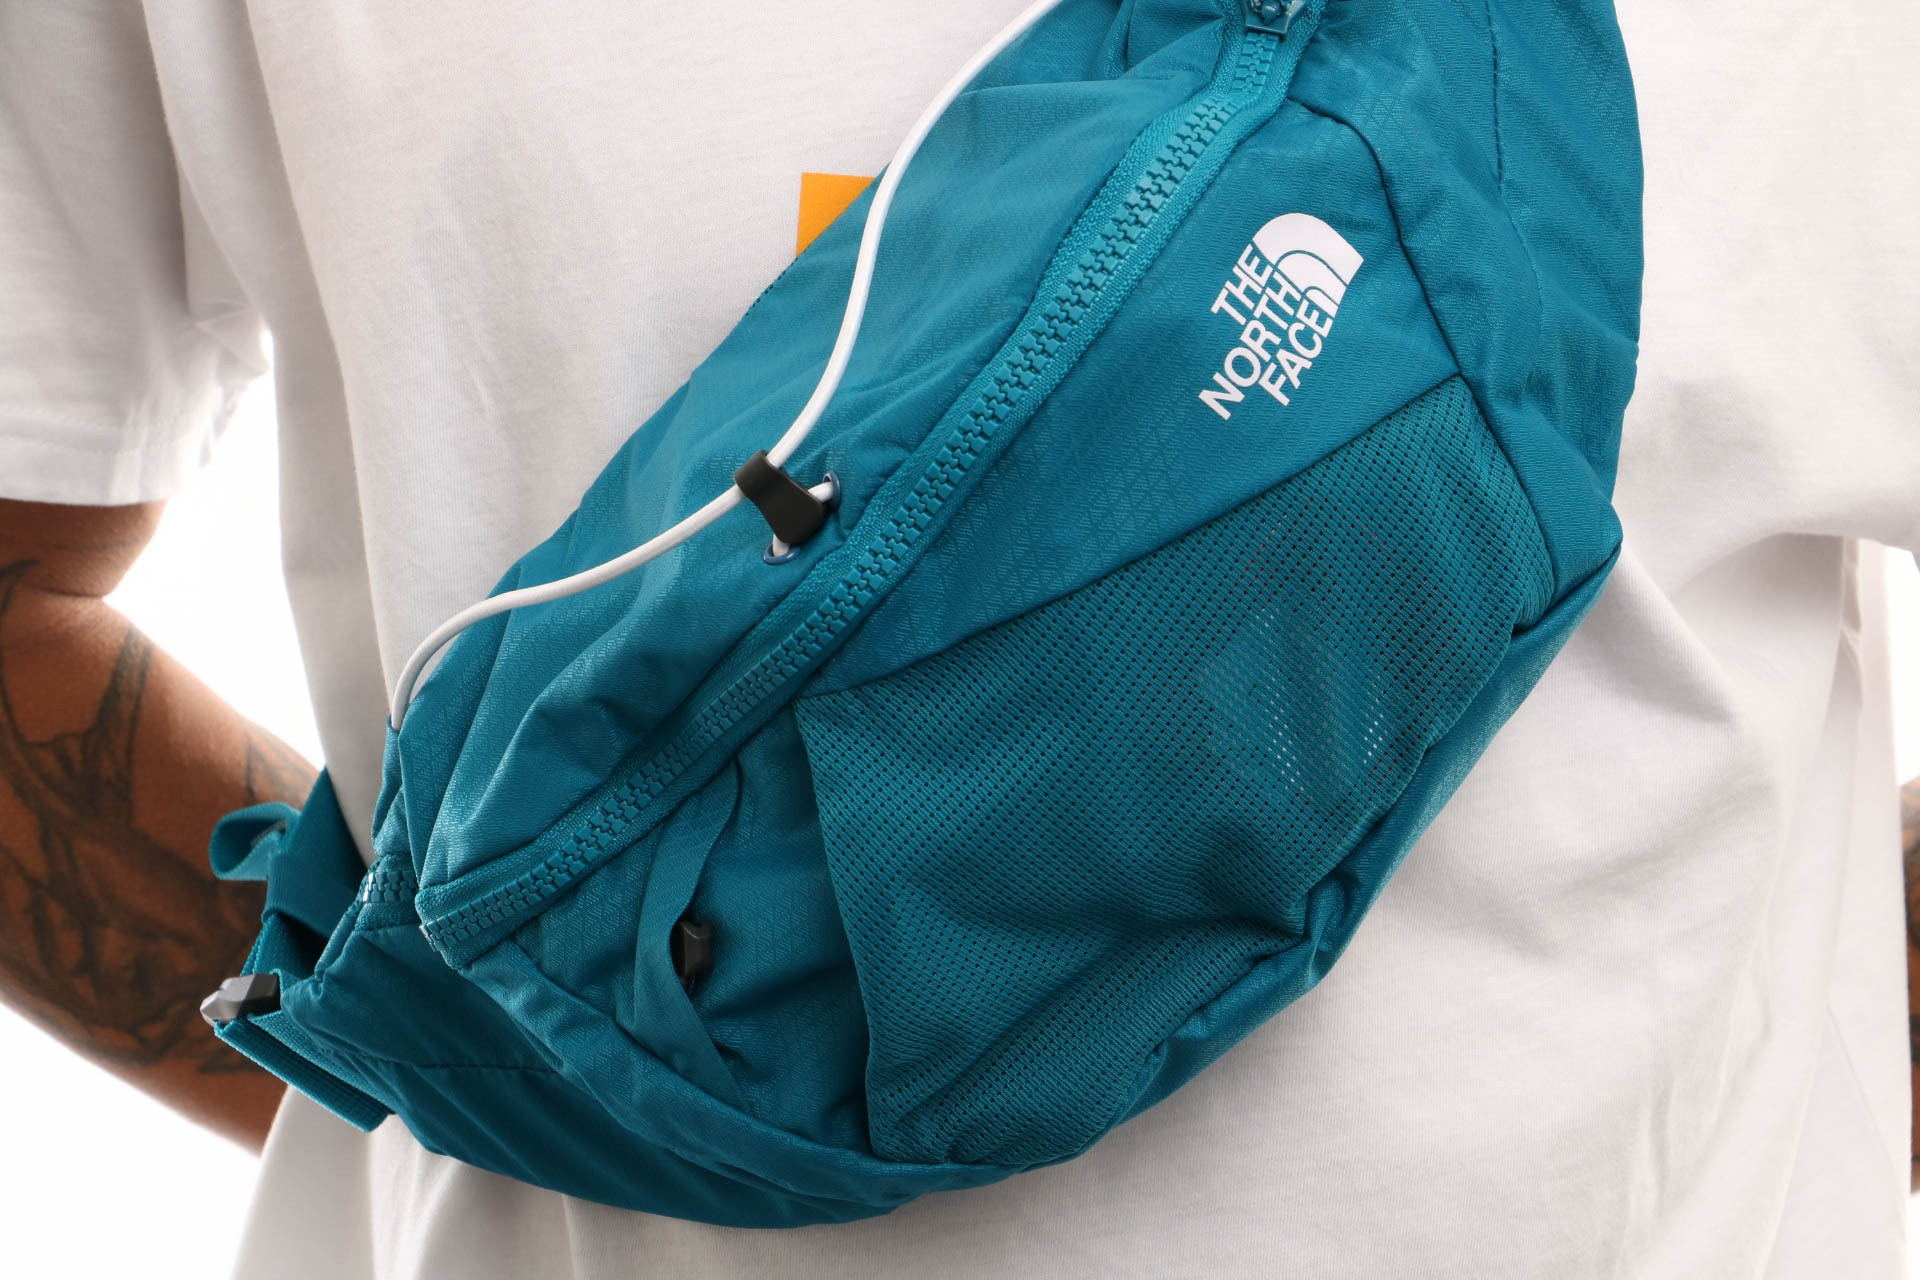 Afbeelding van The North Face Lumbnical - S T93S7Zbg2 Heuptas Crystal Teal/Tnf White